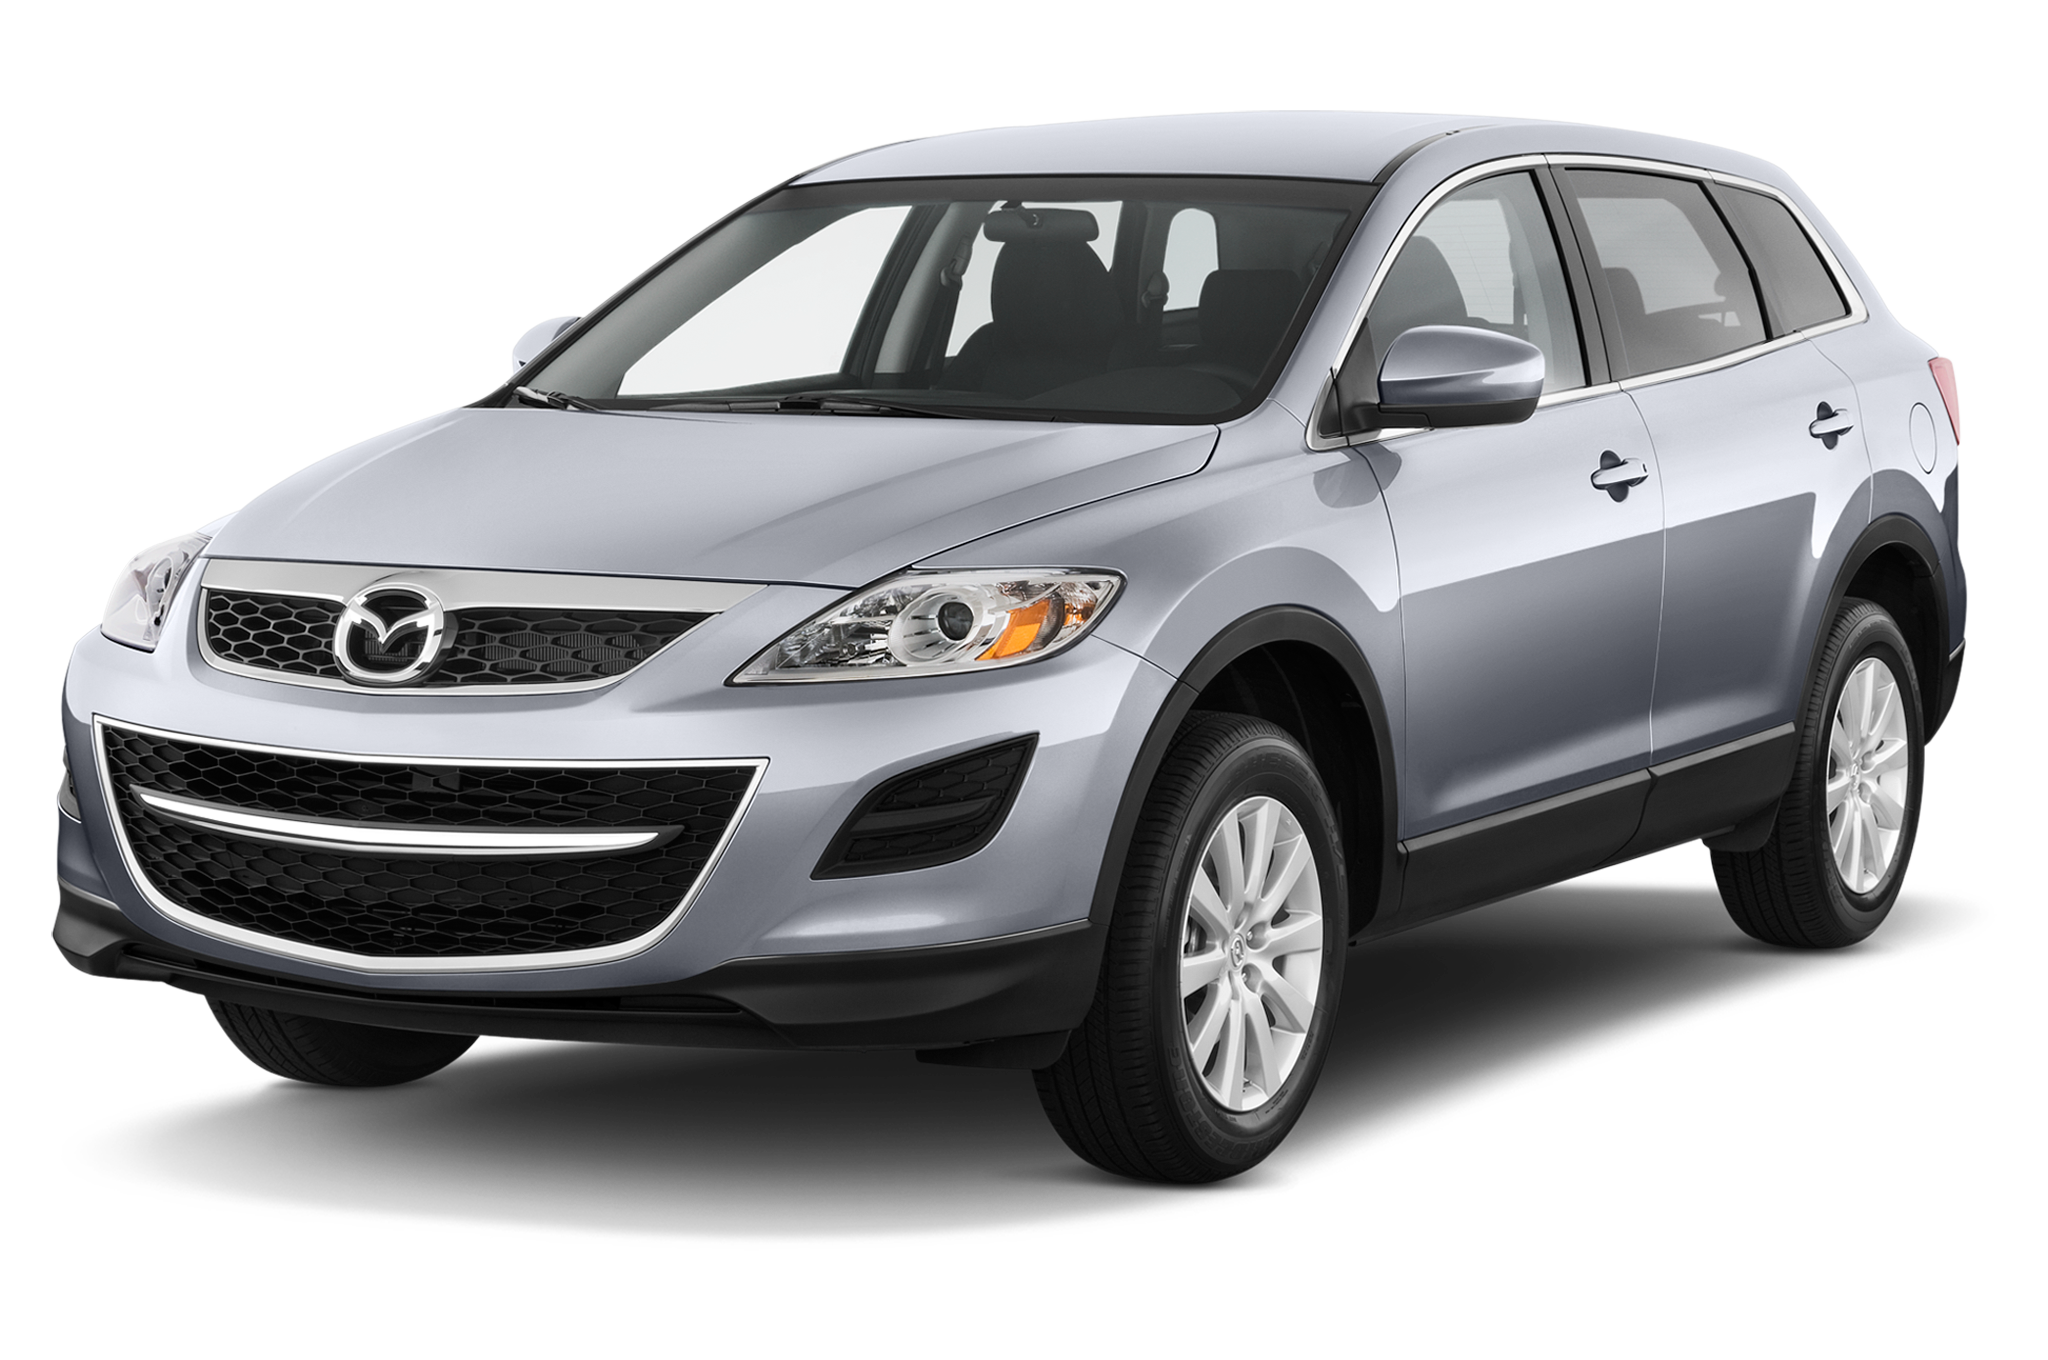 2010 Mazda Cx 9 Grand Touring Mazda Crossover Suv Review